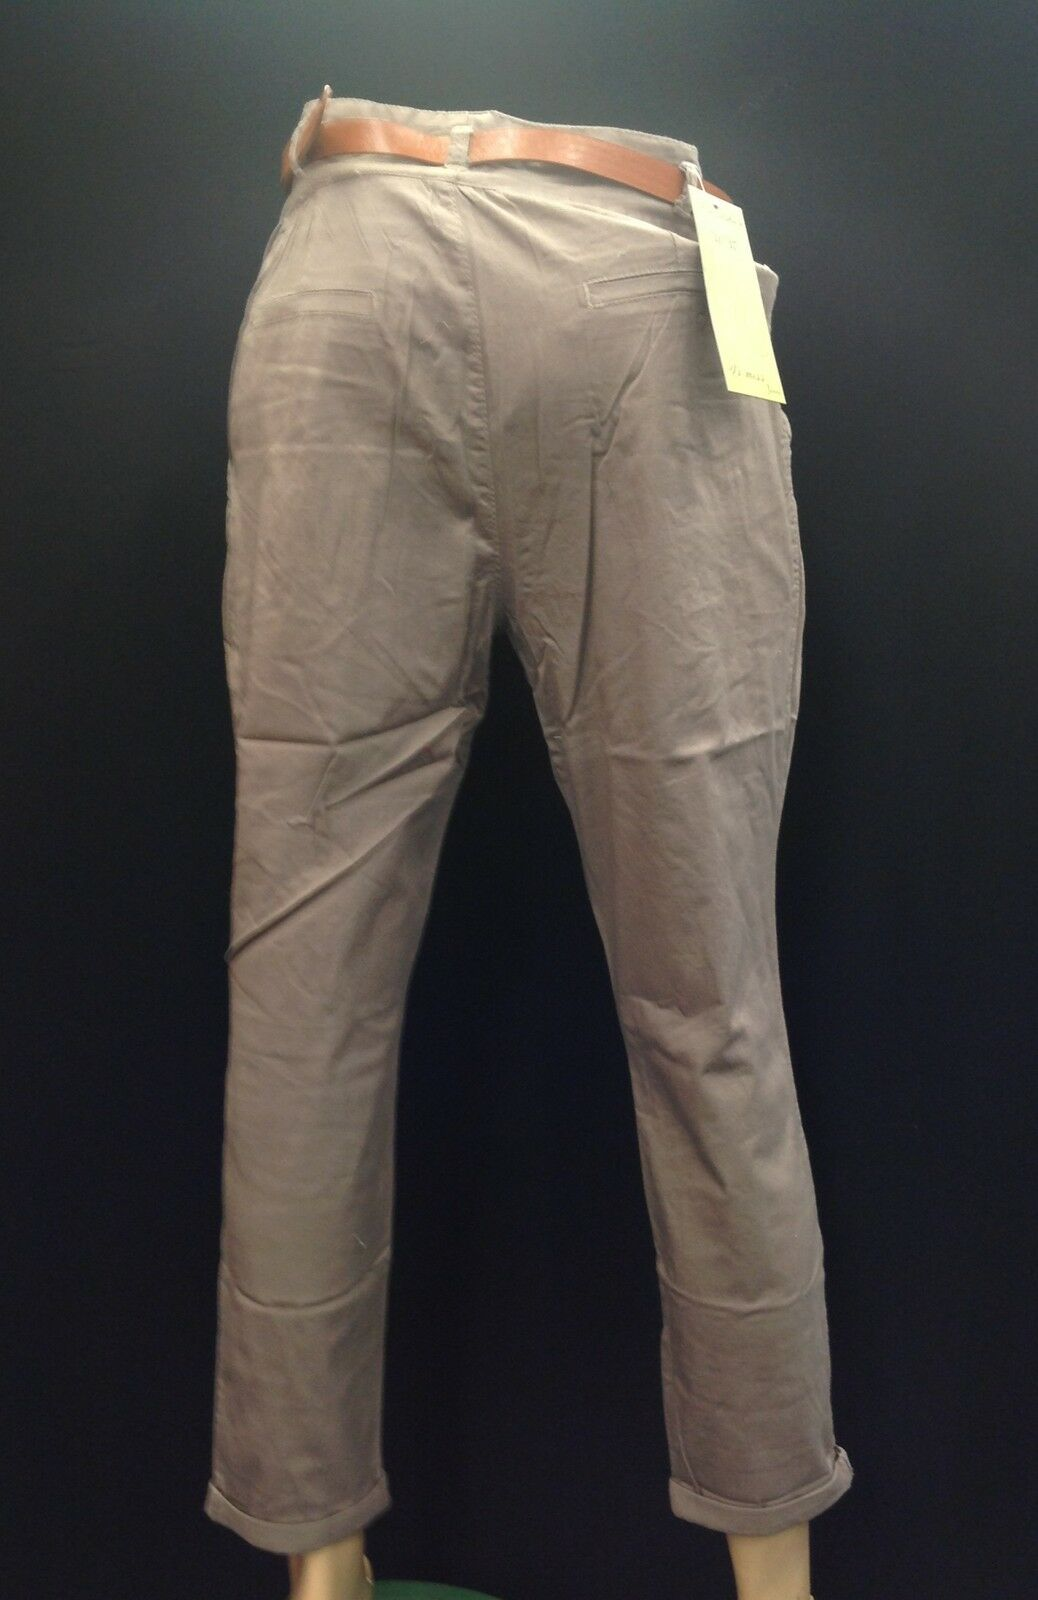 WG002 Womens Ladies New Chino Style Paper Bag Fit Trousers with Belt Sizes 6-16